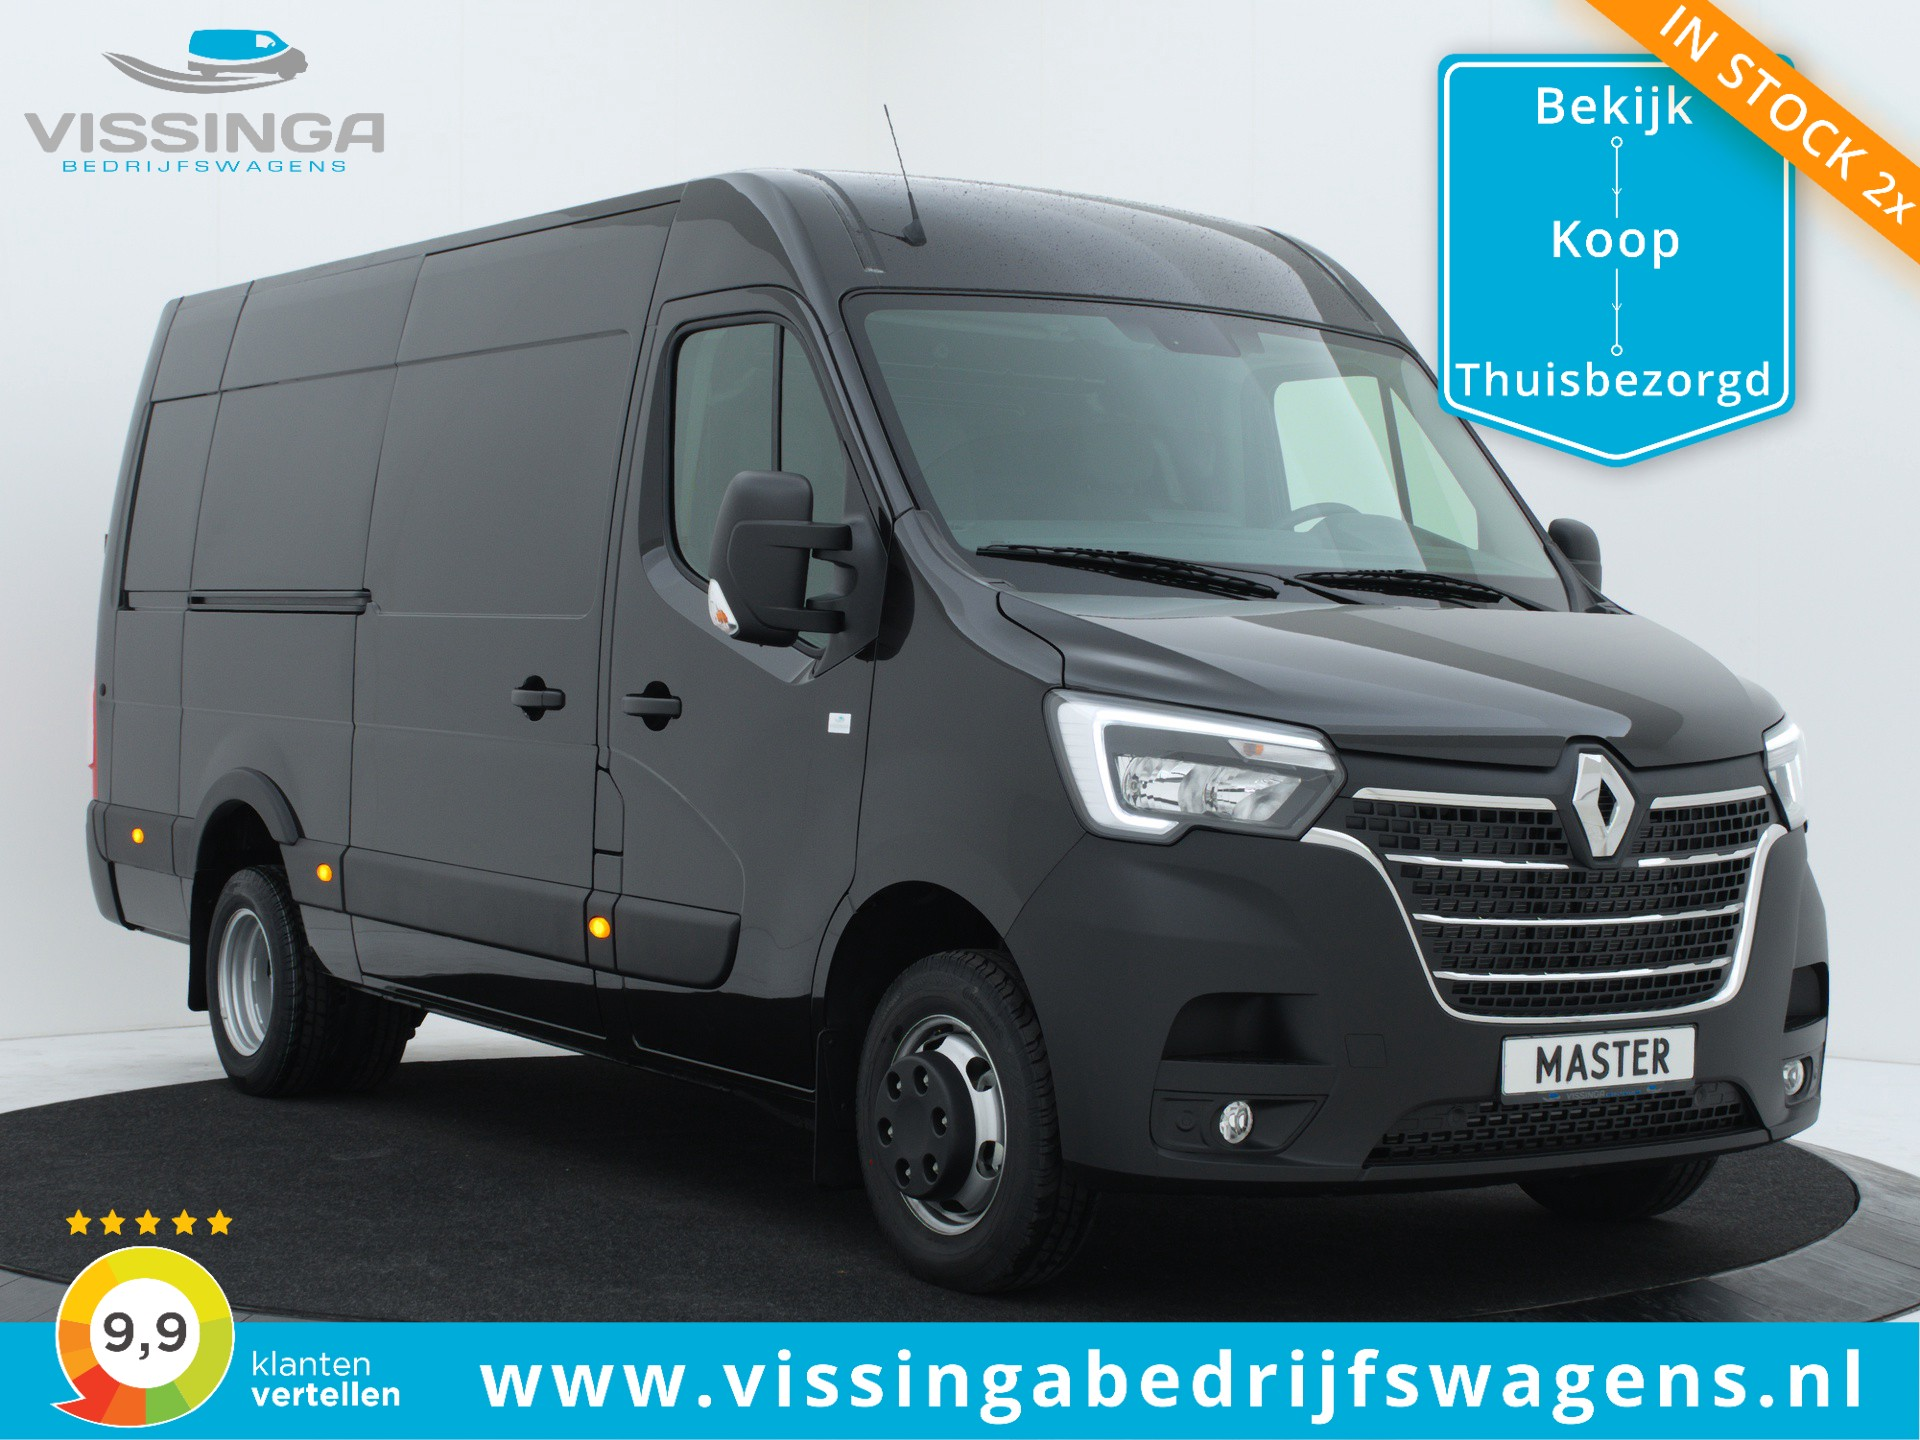 Renault Master T35 2.3 dCi L3H2 165 pk Twin-Turbo Heavy Duty